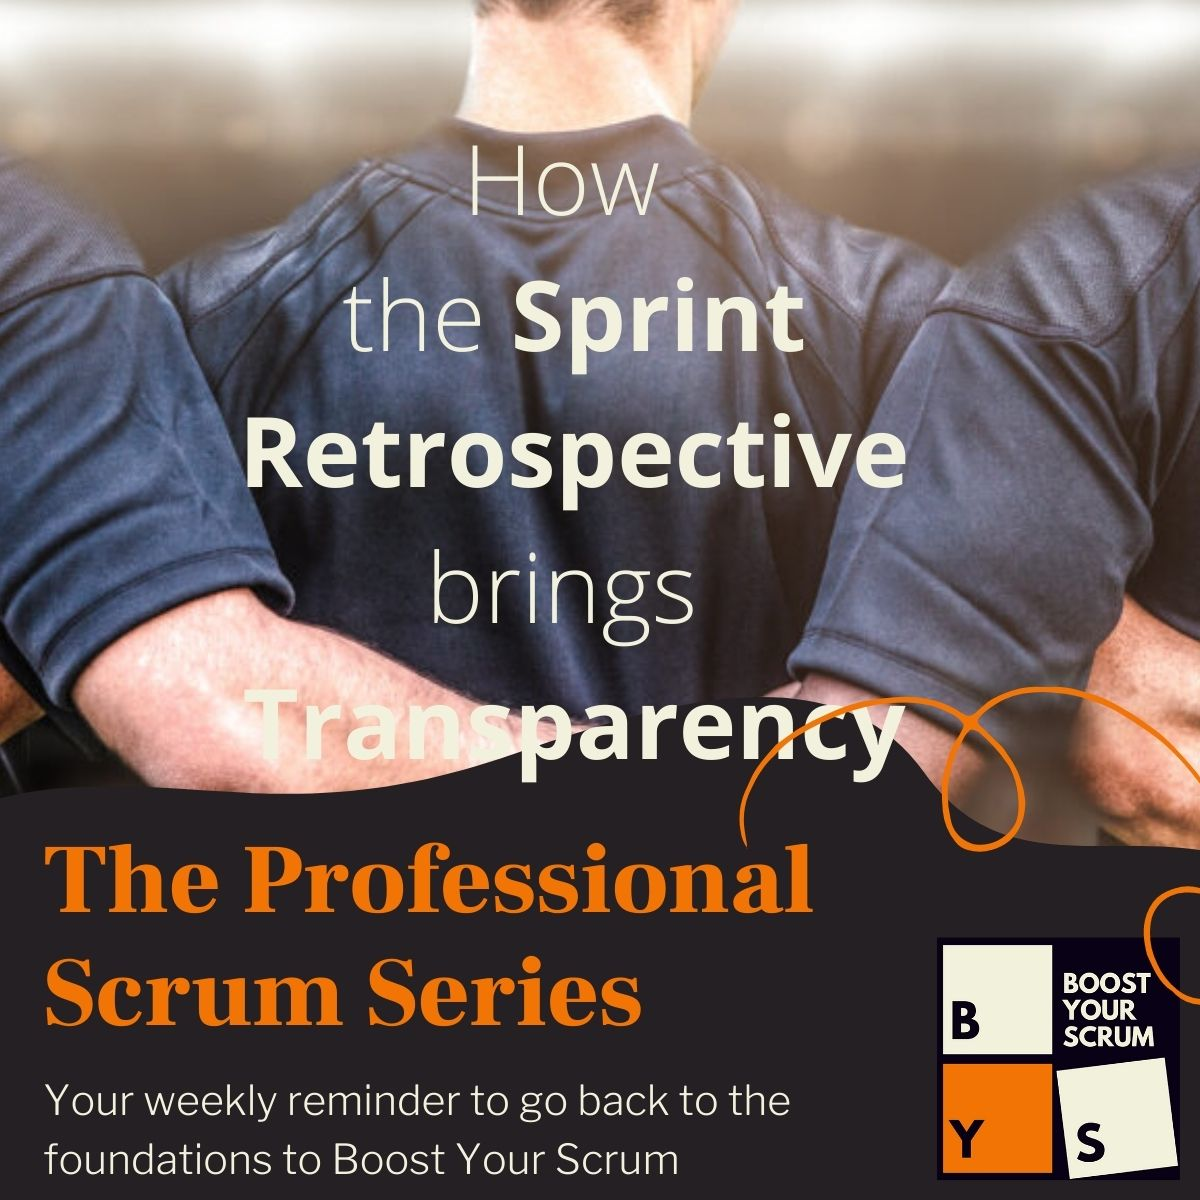 The Sprint Retrospective does bring Transparency